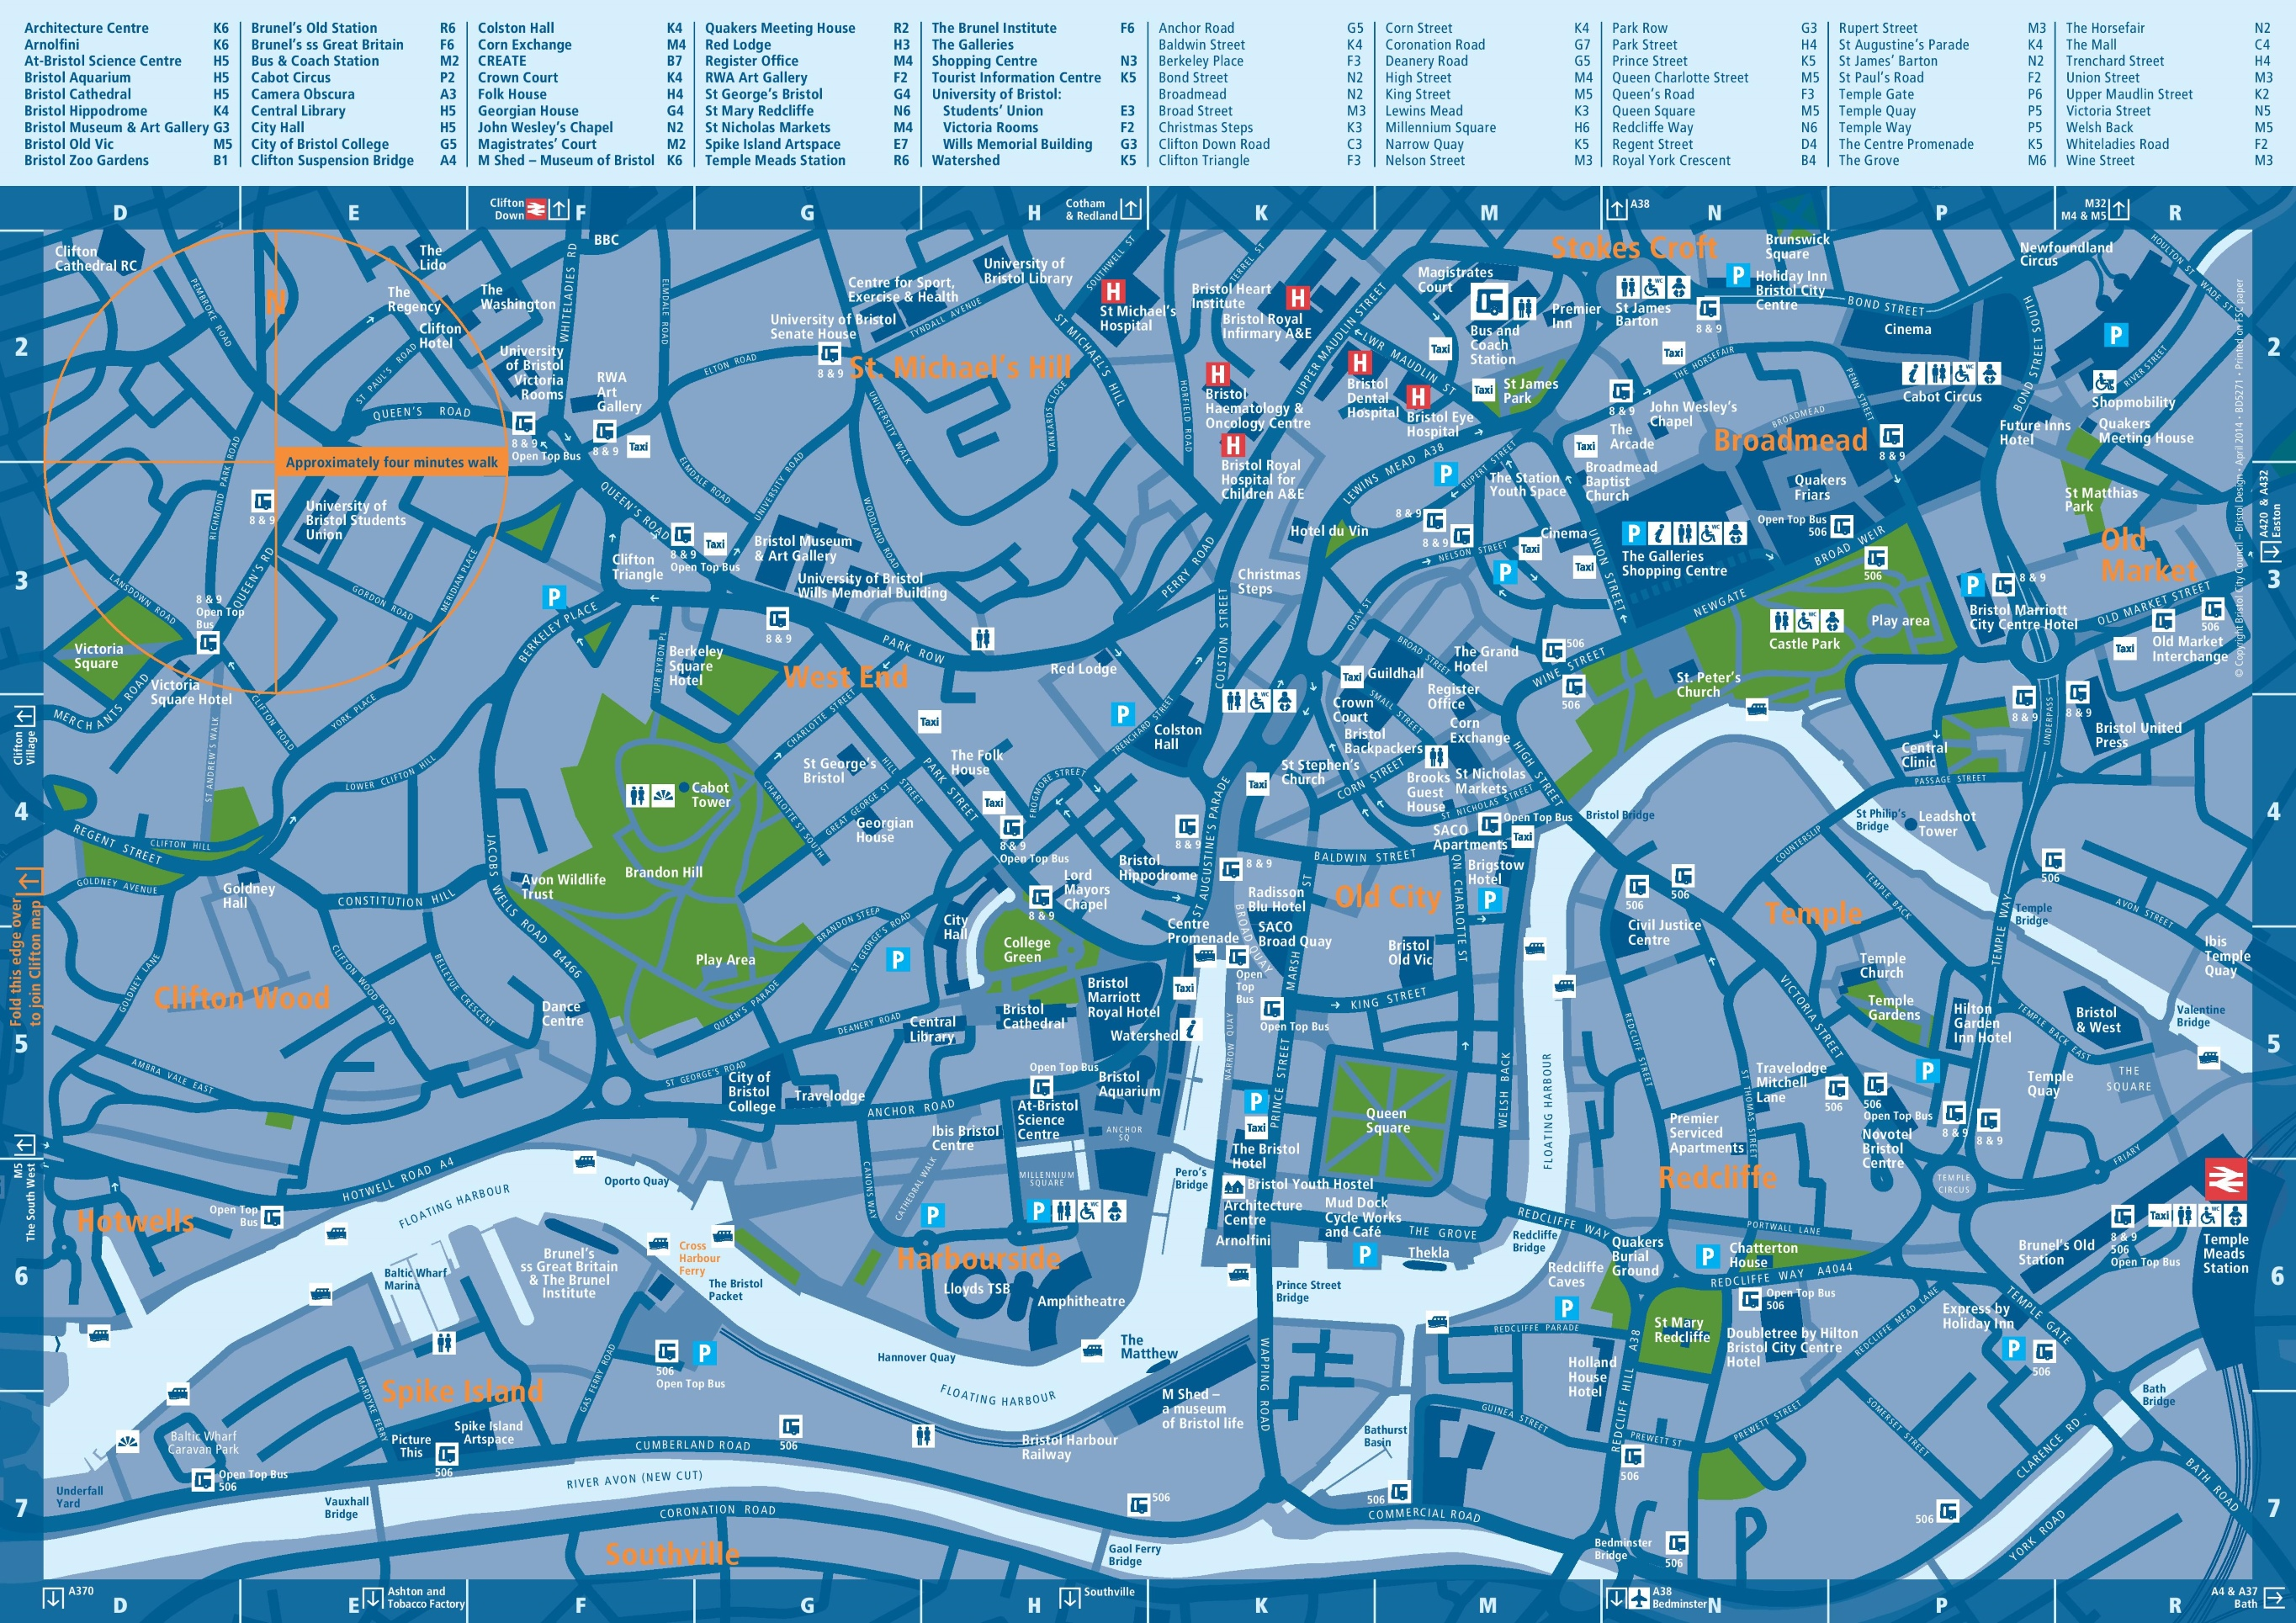 Map Of Bristol Bristol tourist attractions map Map Of Bristol